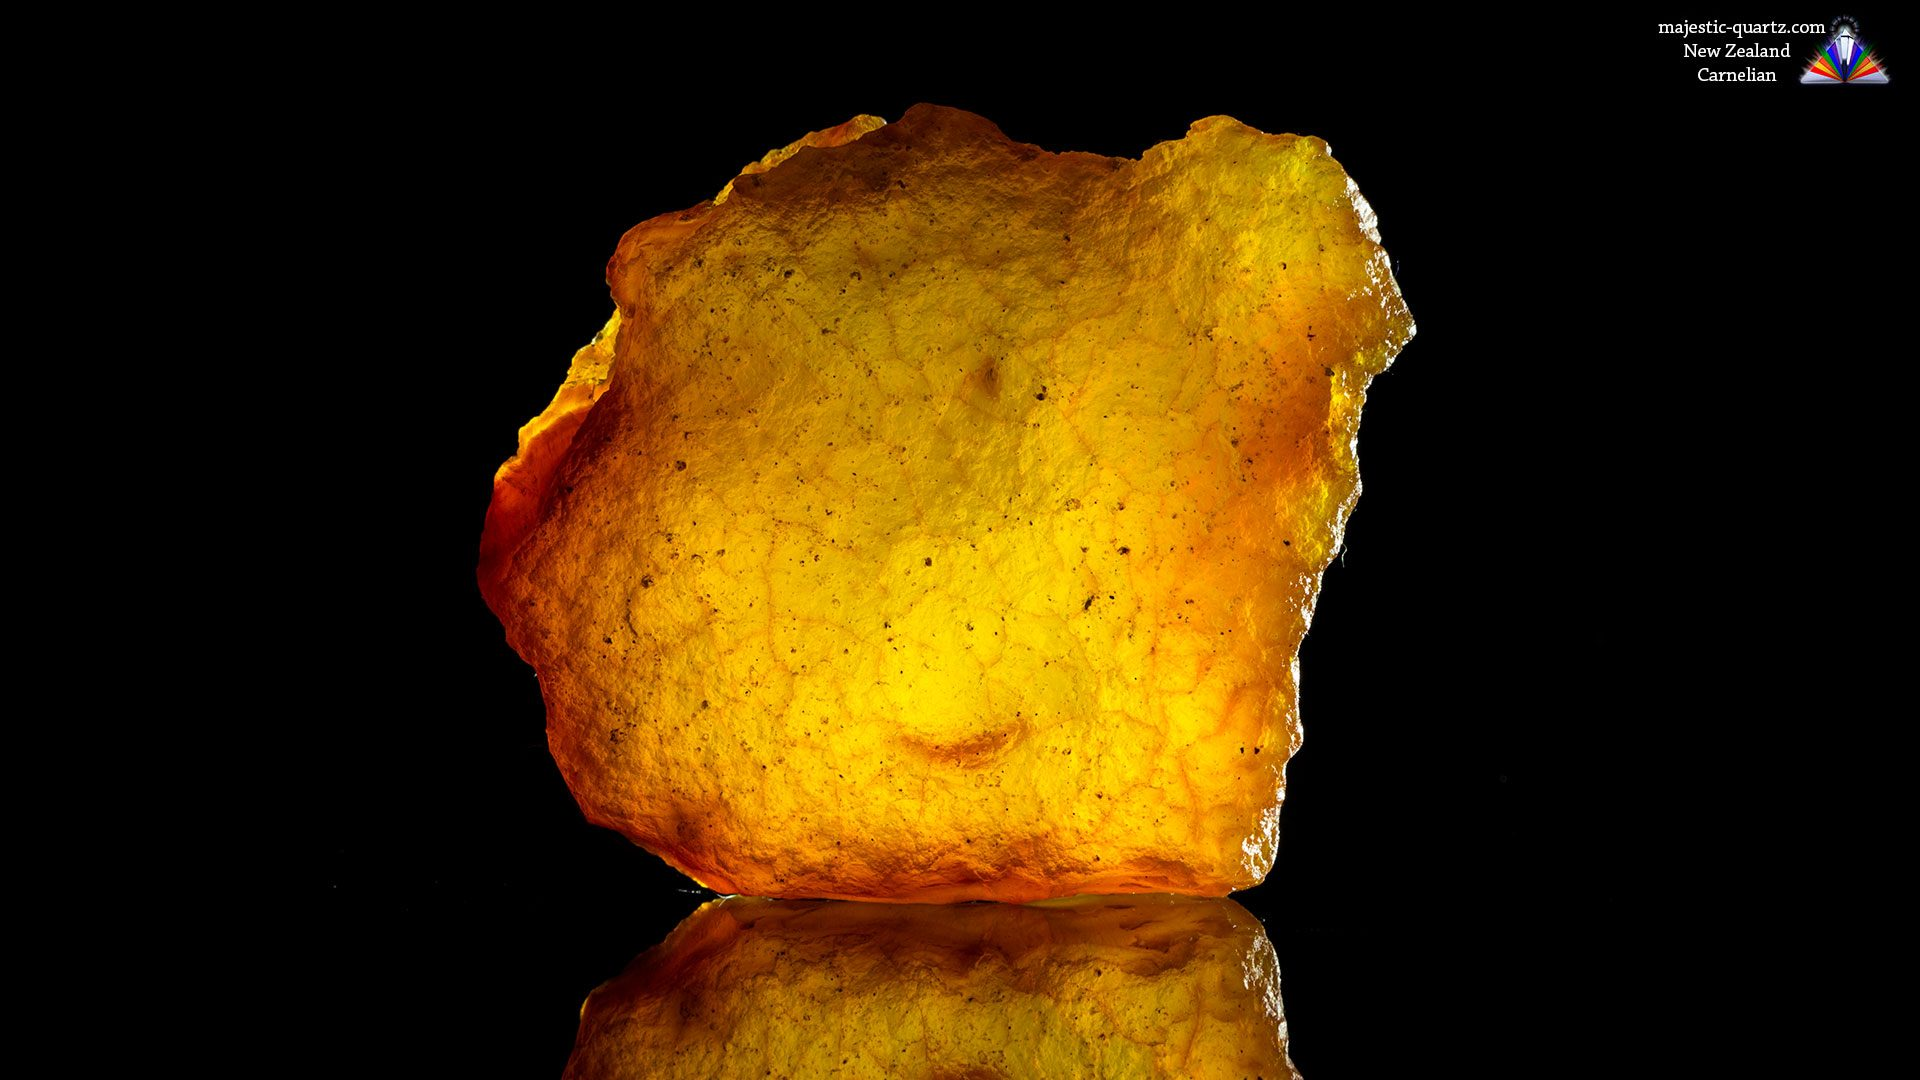 Genuine Carnelian Specimen From New Zealand - Photograph by Anthony Bradford